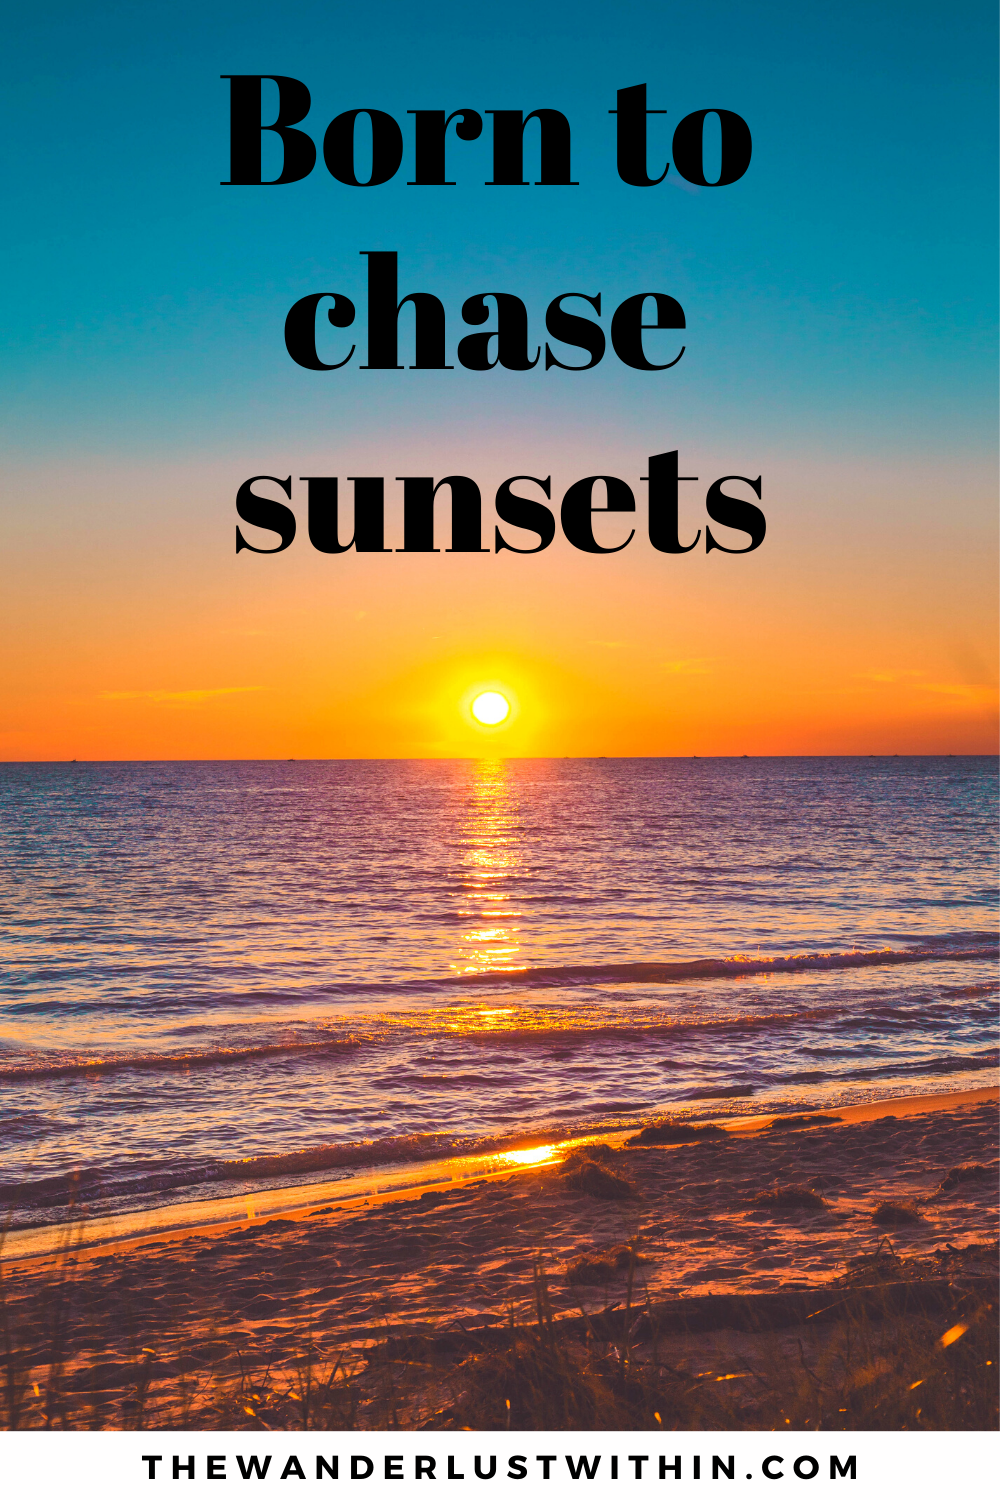 250 Perfect Sunset Captions For Instagram 2020 The Wanderlust Within In 2020 Sunset Captions For Instagram Sunset Captions Instagram Captions